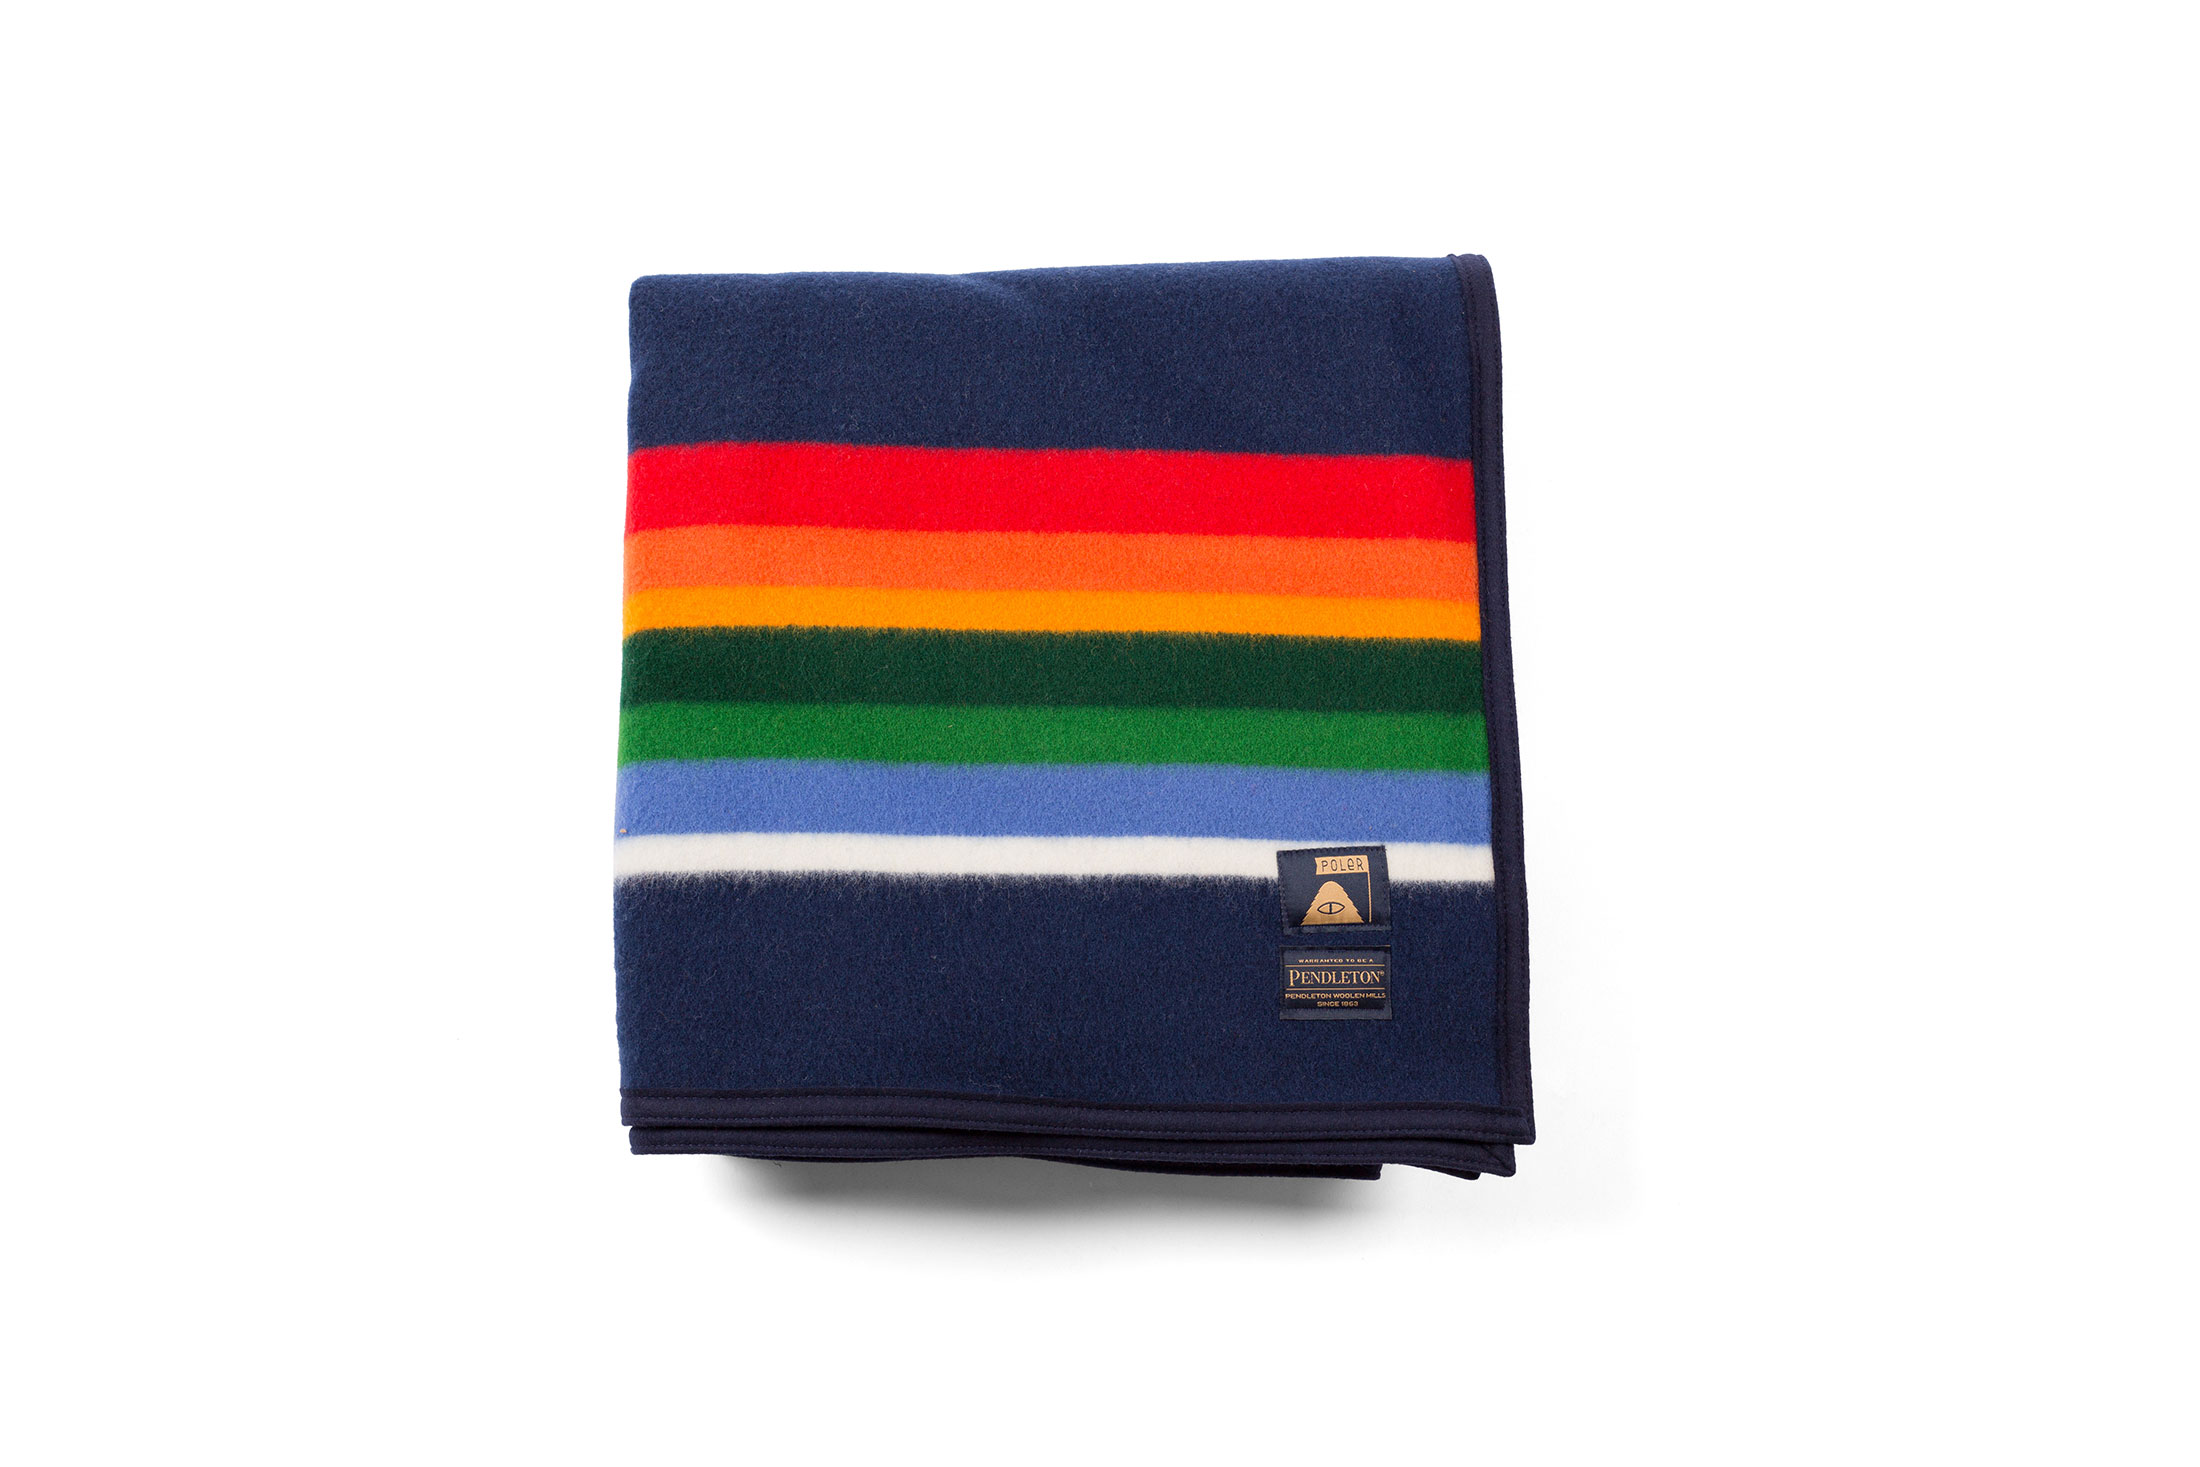 Poler x Pendleton 2016 Fall/Winter Collection camping essentials orange green red blue - 1762256